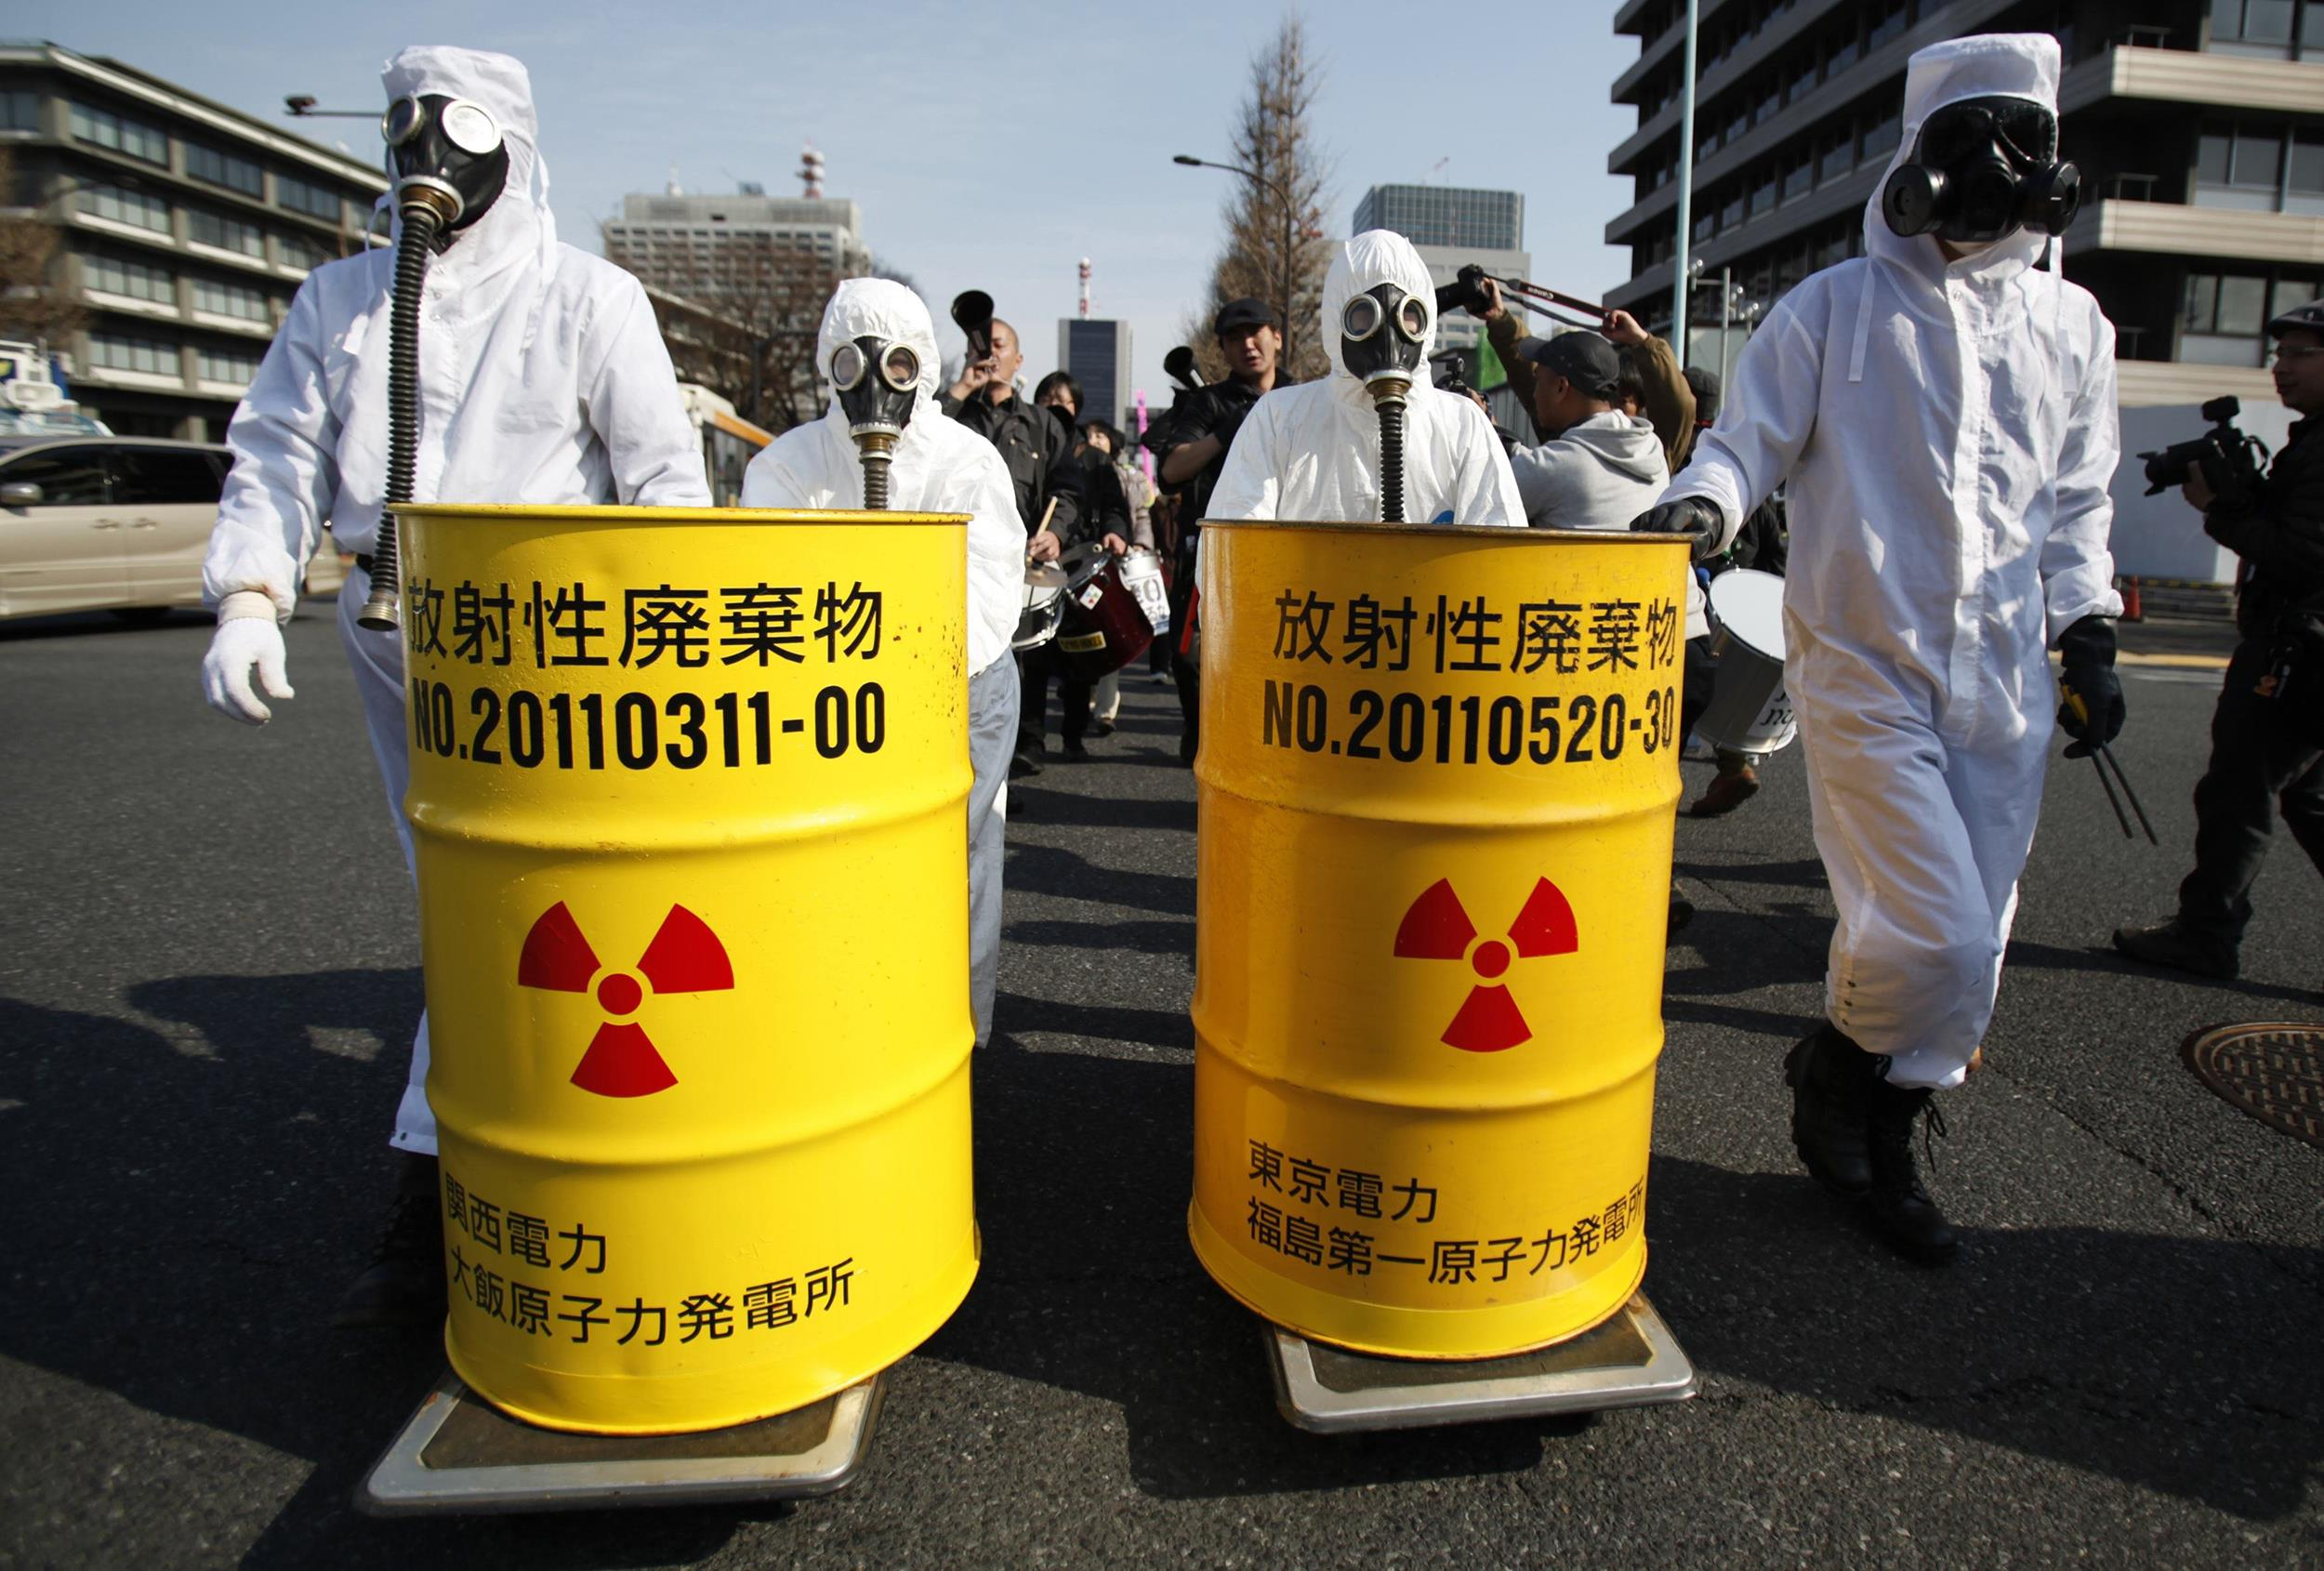 Image: Anti-nuclear protesters wearing protective suits push mock drums which are labeled as radioactive waste from Kansai Electric Power Co's Ohi nuclear power plant and TEPCO's Fukushima nuclear power plant as they march in Tokyo